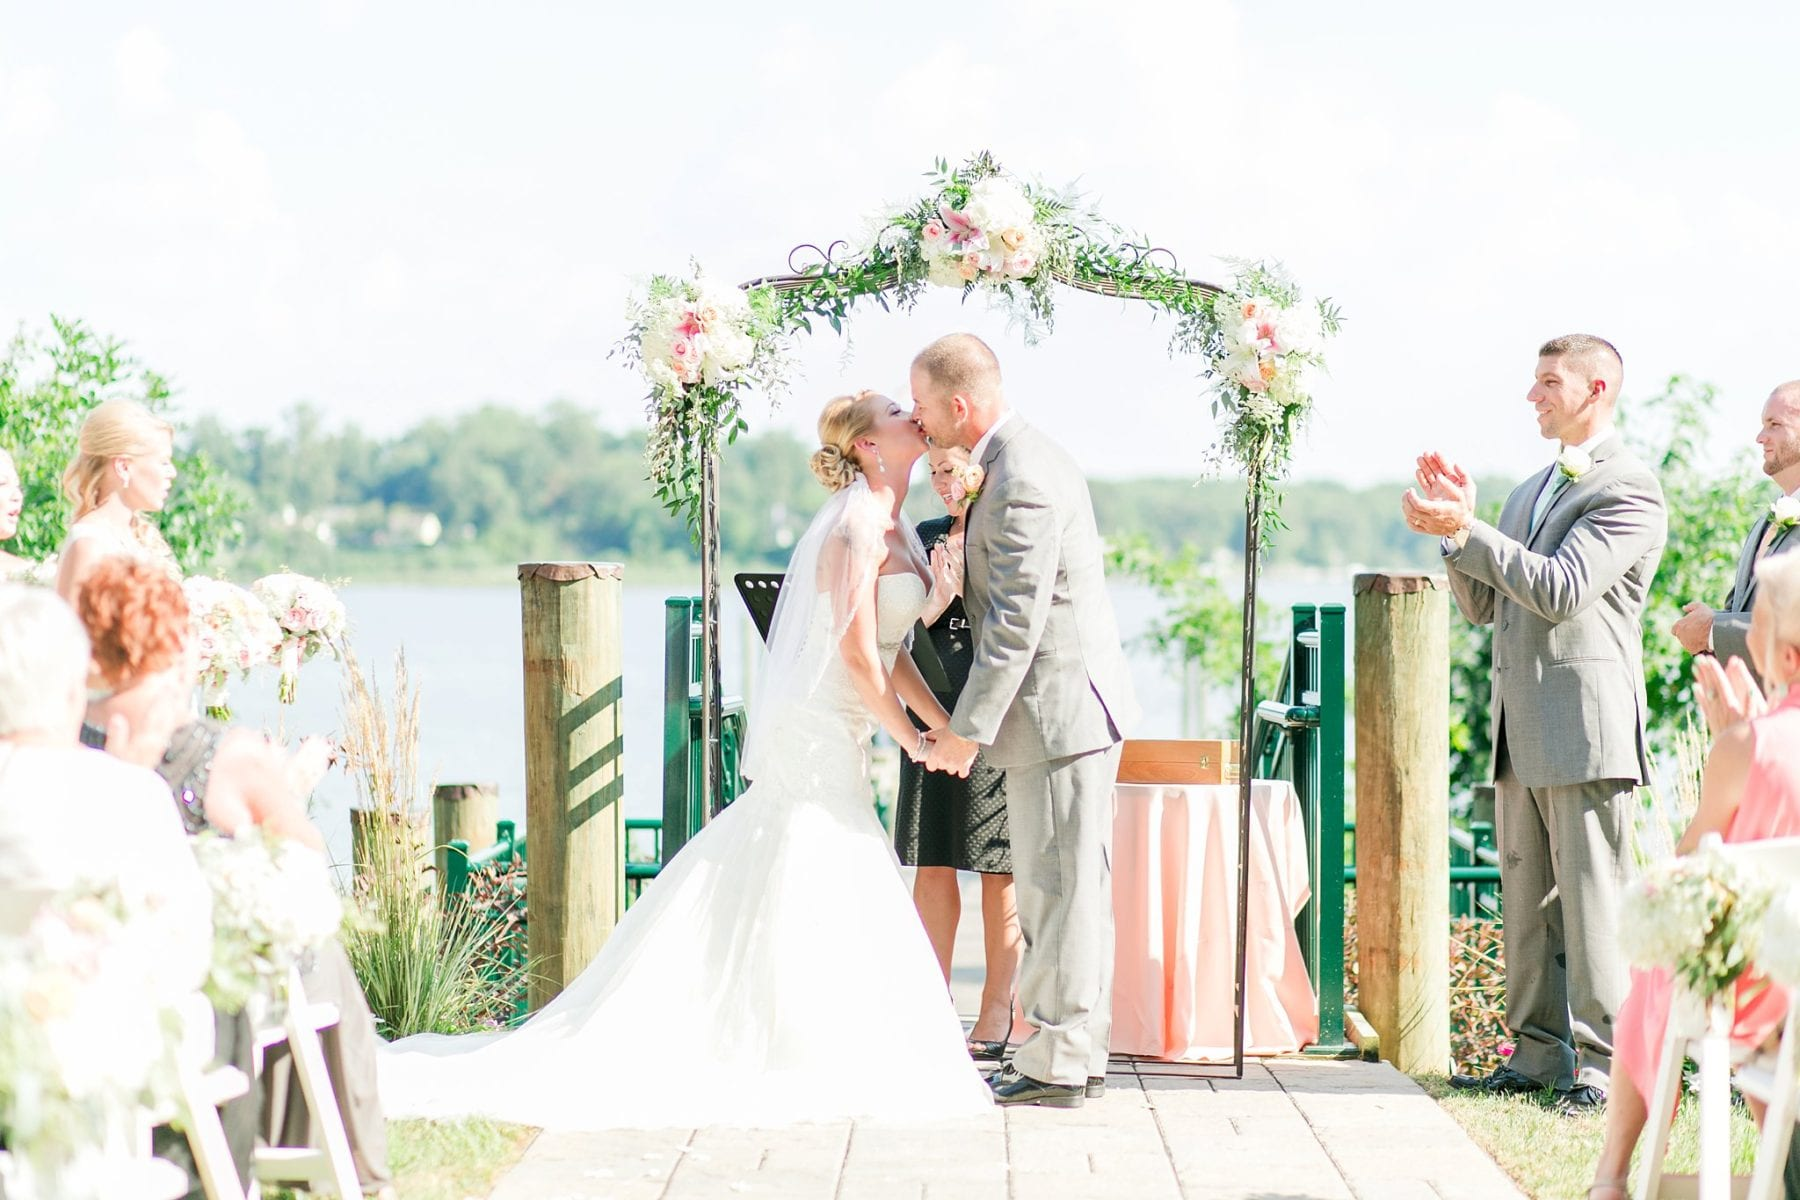 Waters Edge Wedding Photos Maryland Wedding Photographer Megan Kelsey Photography Katie & Conor-226.JPG